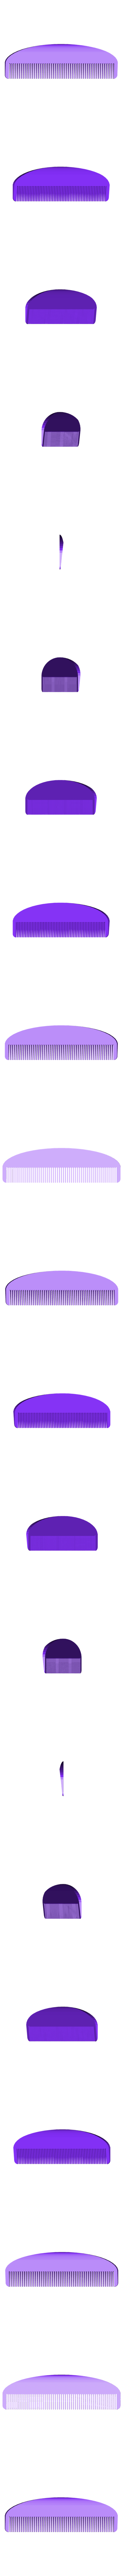 customized_hair_comb_no2.stl Download free STL file Customizable Comb • 3D printable model, MightyNozzle